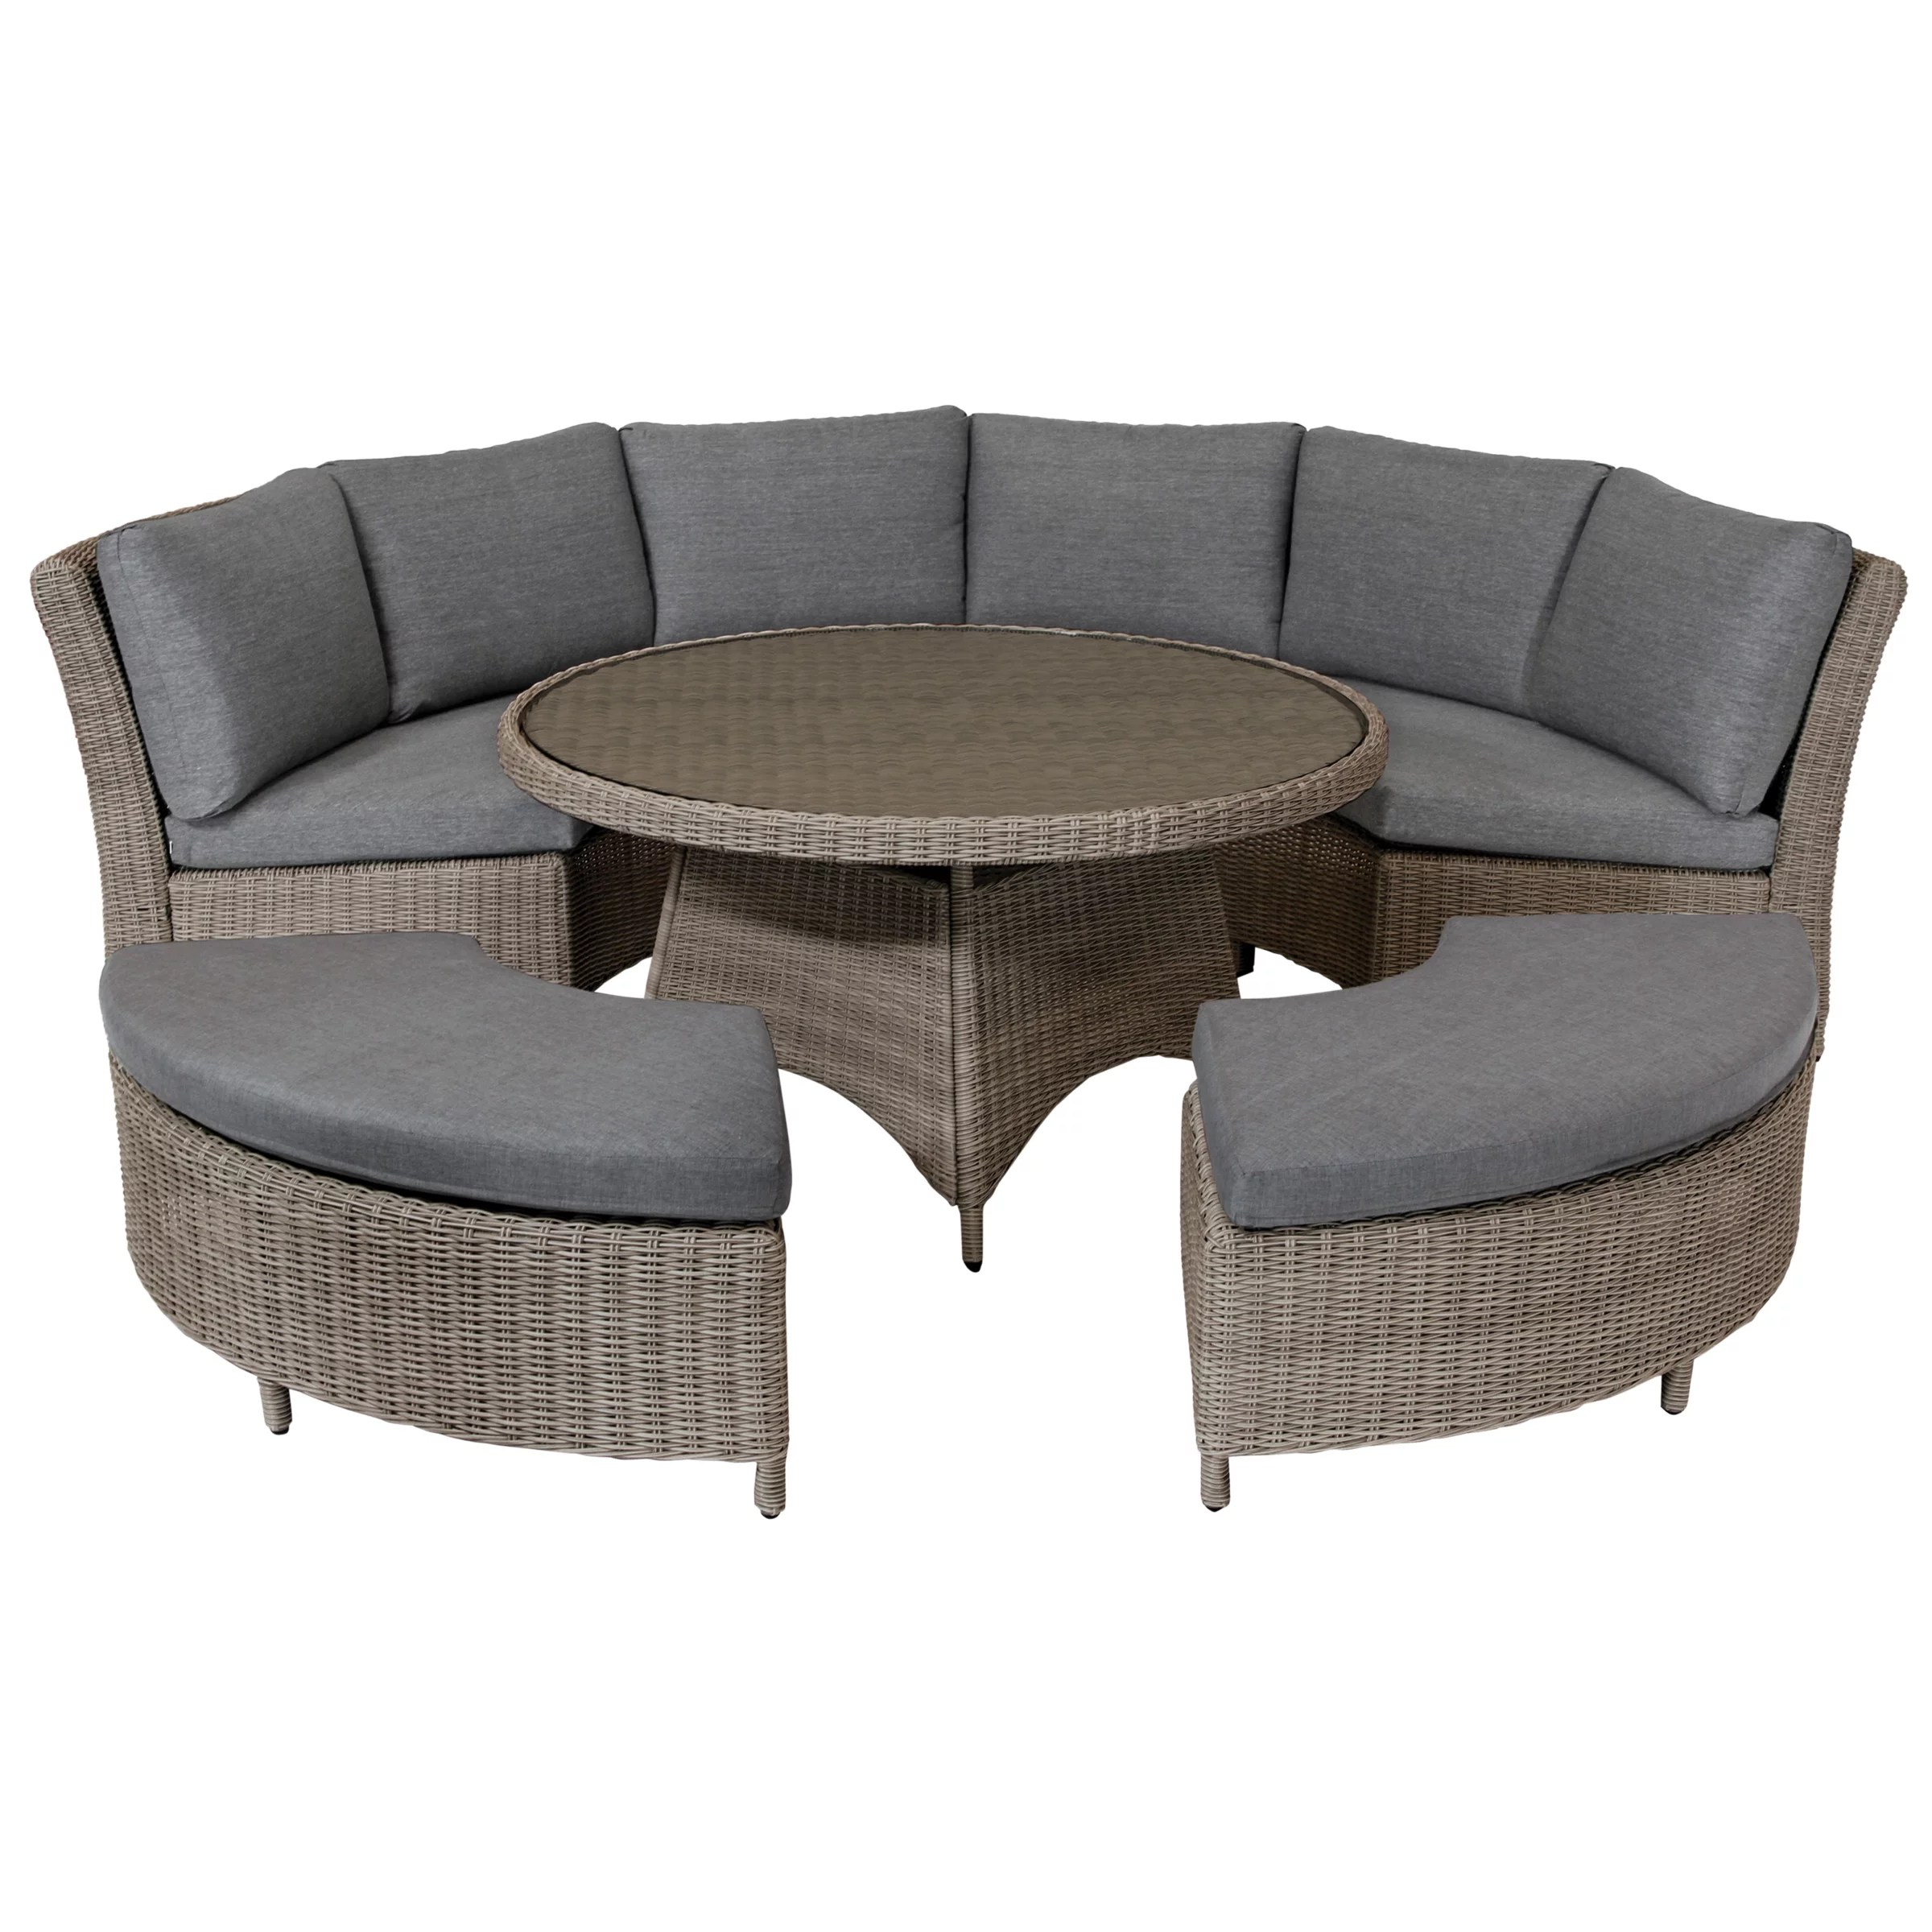 Rattan Sofa Occasion Kettler Palma 8 Seater Round Garden Dining Table And